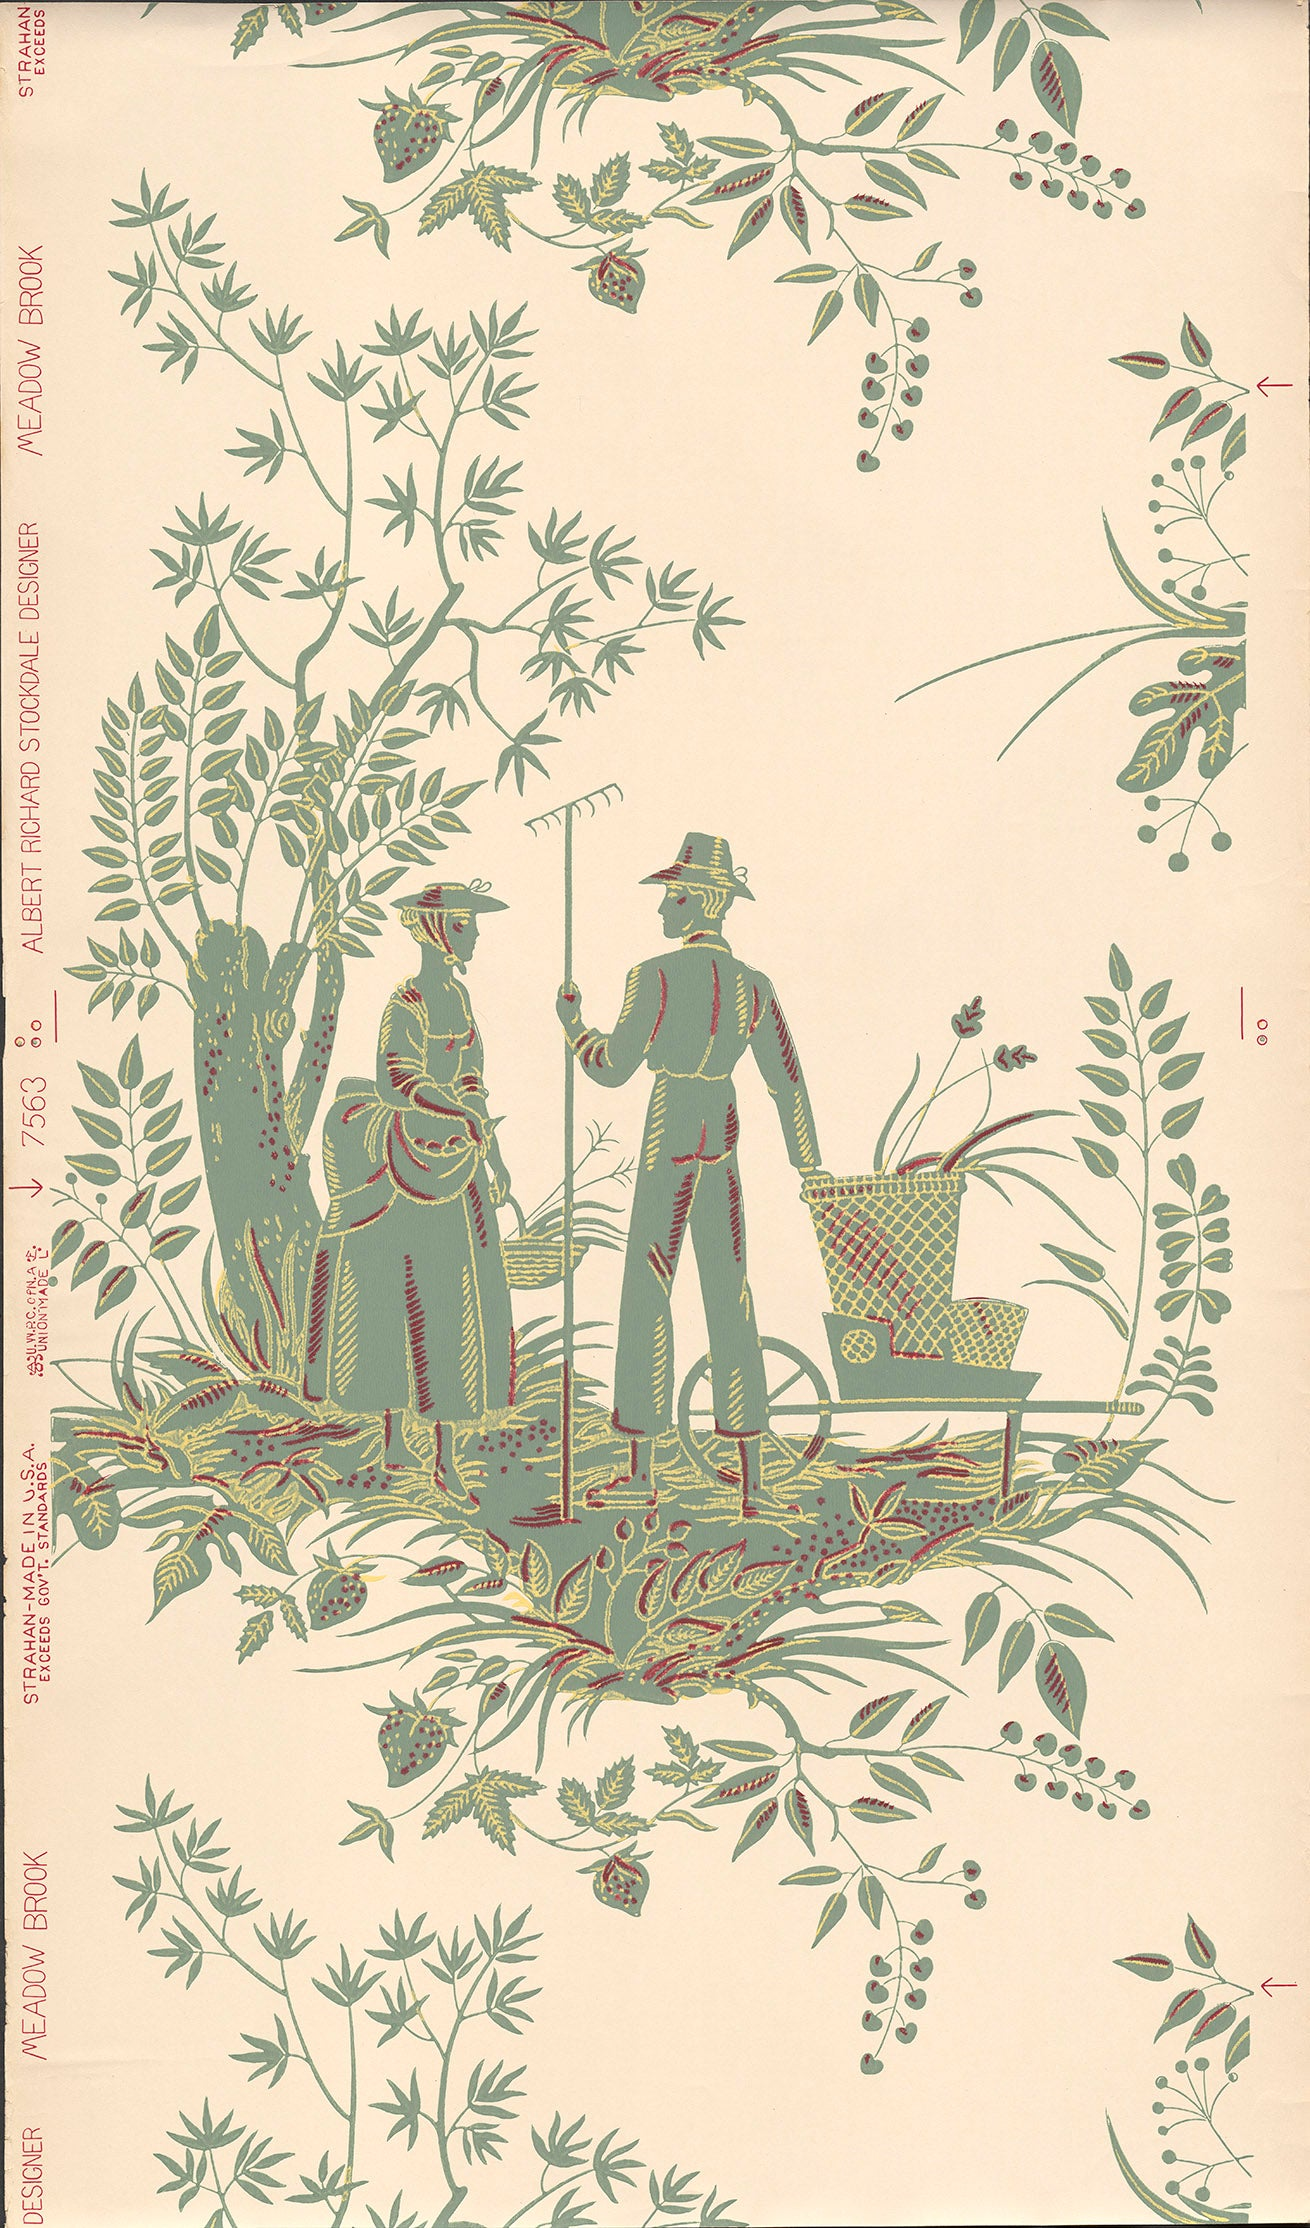 Farm Figures - Vintage Wallpaper Remnant